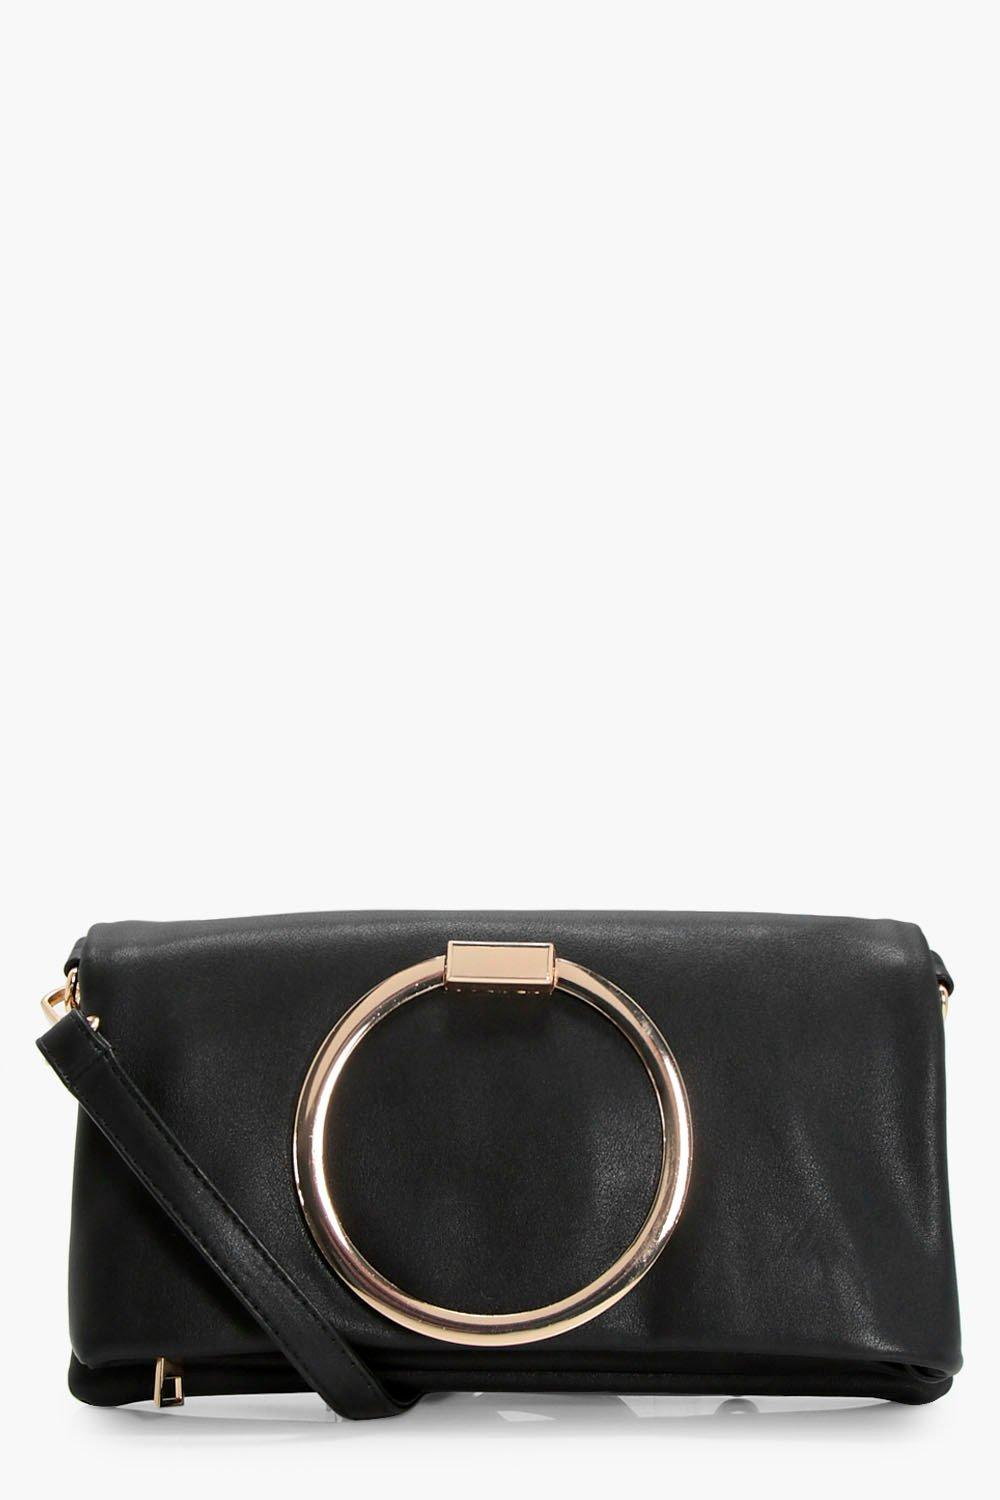 Large Ring Cross Body Bag - black - Karen Large Ri